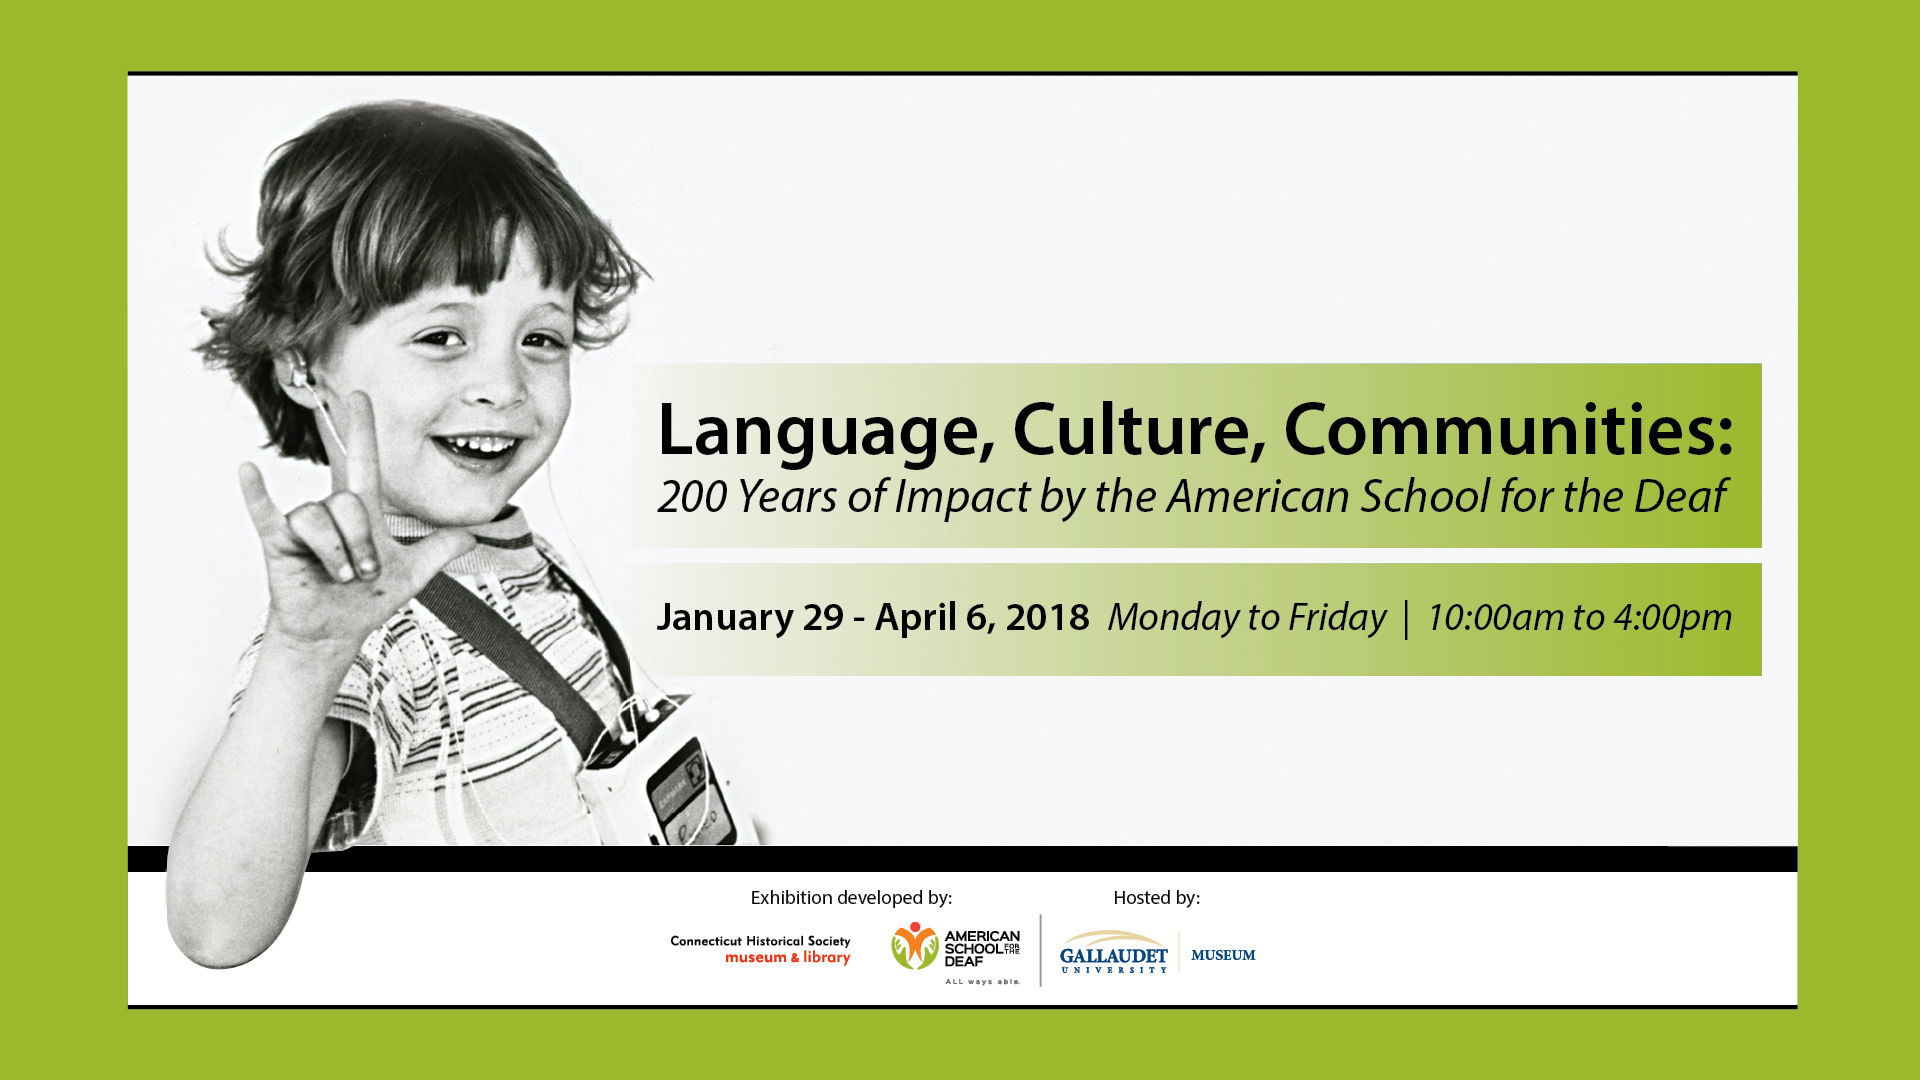 "Deaf child signing ""I Love You."" ""Language, Culture, Communities: 200 Years of Impact by the American School for the Deaf.  January 29 - April 6, 2018 - Monday to Friday from 10:00am to 4:00pm at the Linda K. Jordan Gallery in Wasburn Art Building. Three logos: CHS, ASD, and Gallaudet Museum."